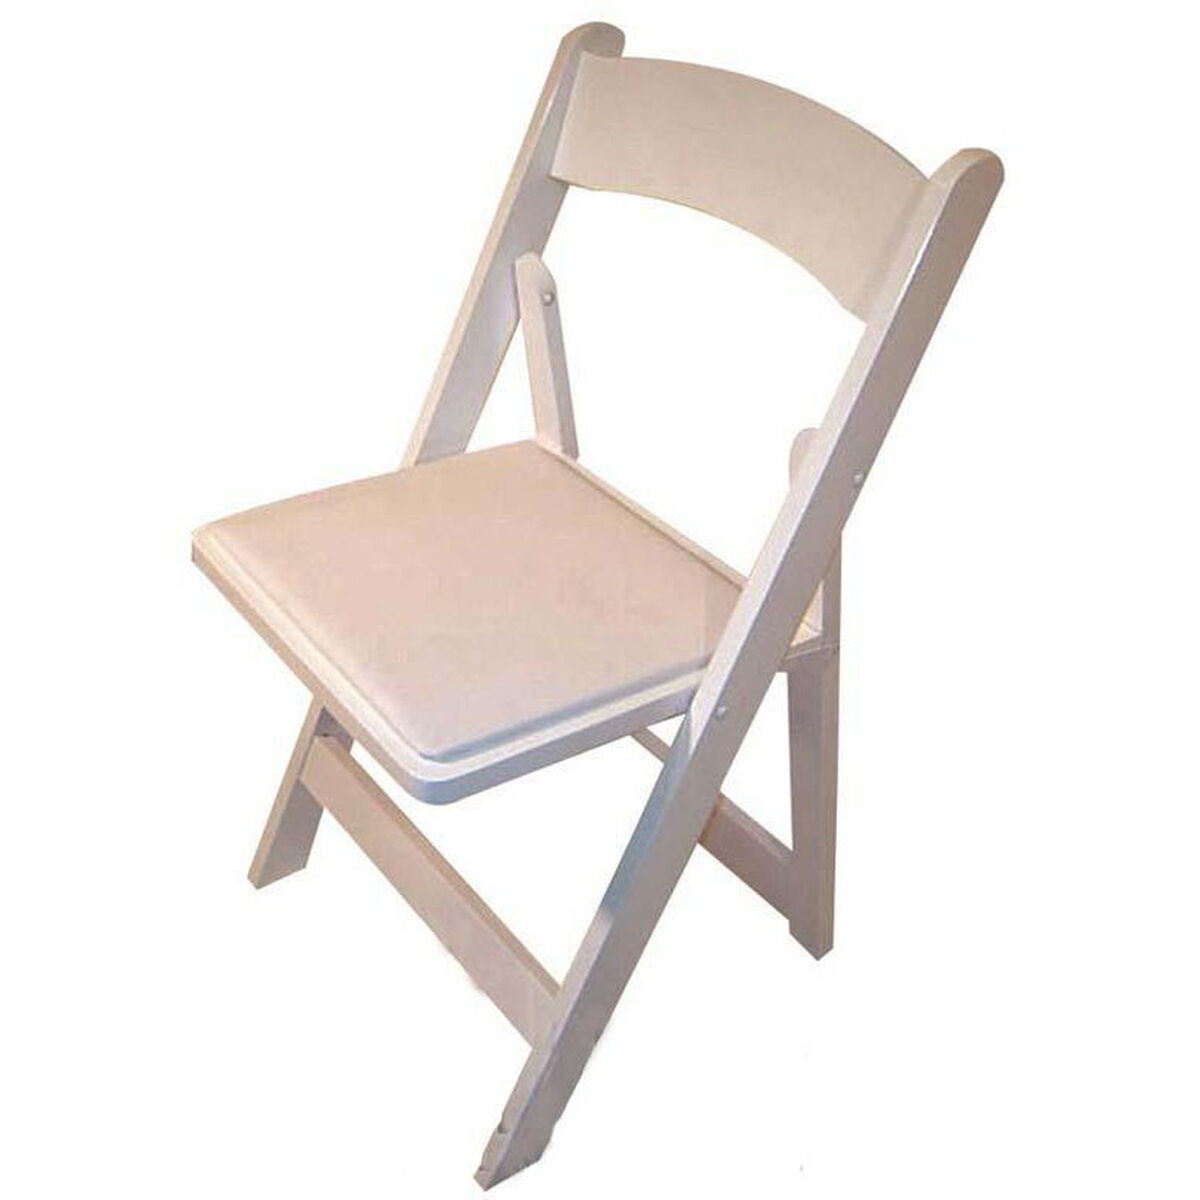 white wood folding chair 111001. Black Bedroom Furniture Sets. Home Design Ideas